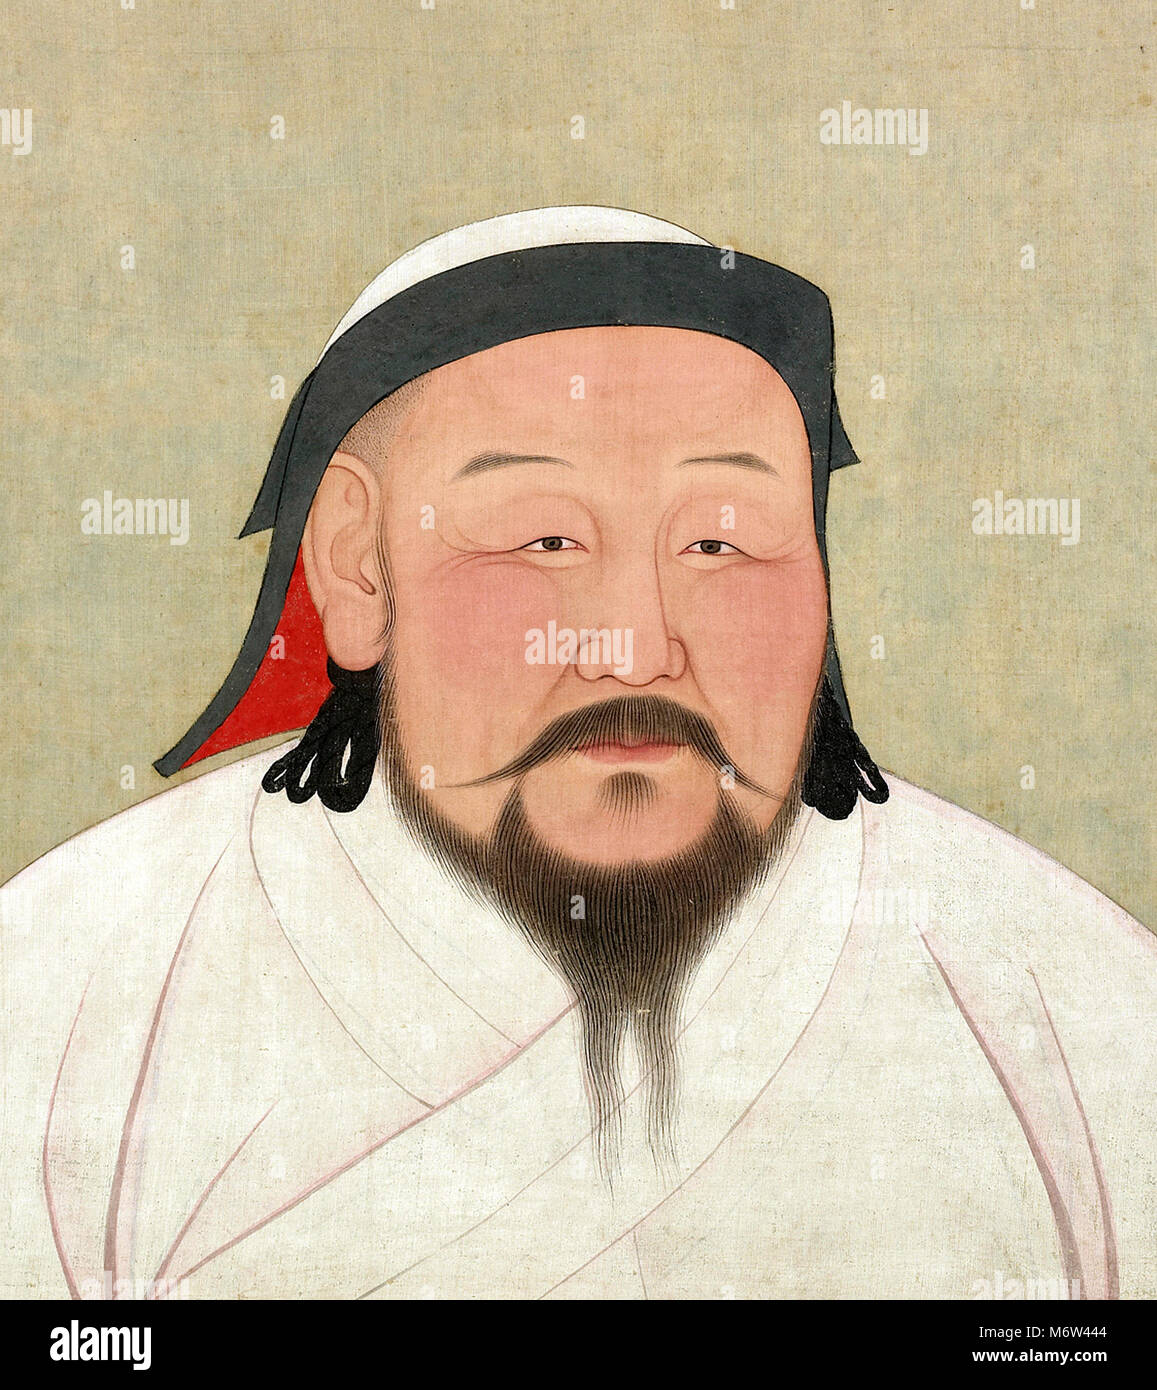 Kublai Khan (c.1215-1294), portrait de la cinquième Khagan (grand Khan) de l'Empire mongol, peinture et Photo Stock